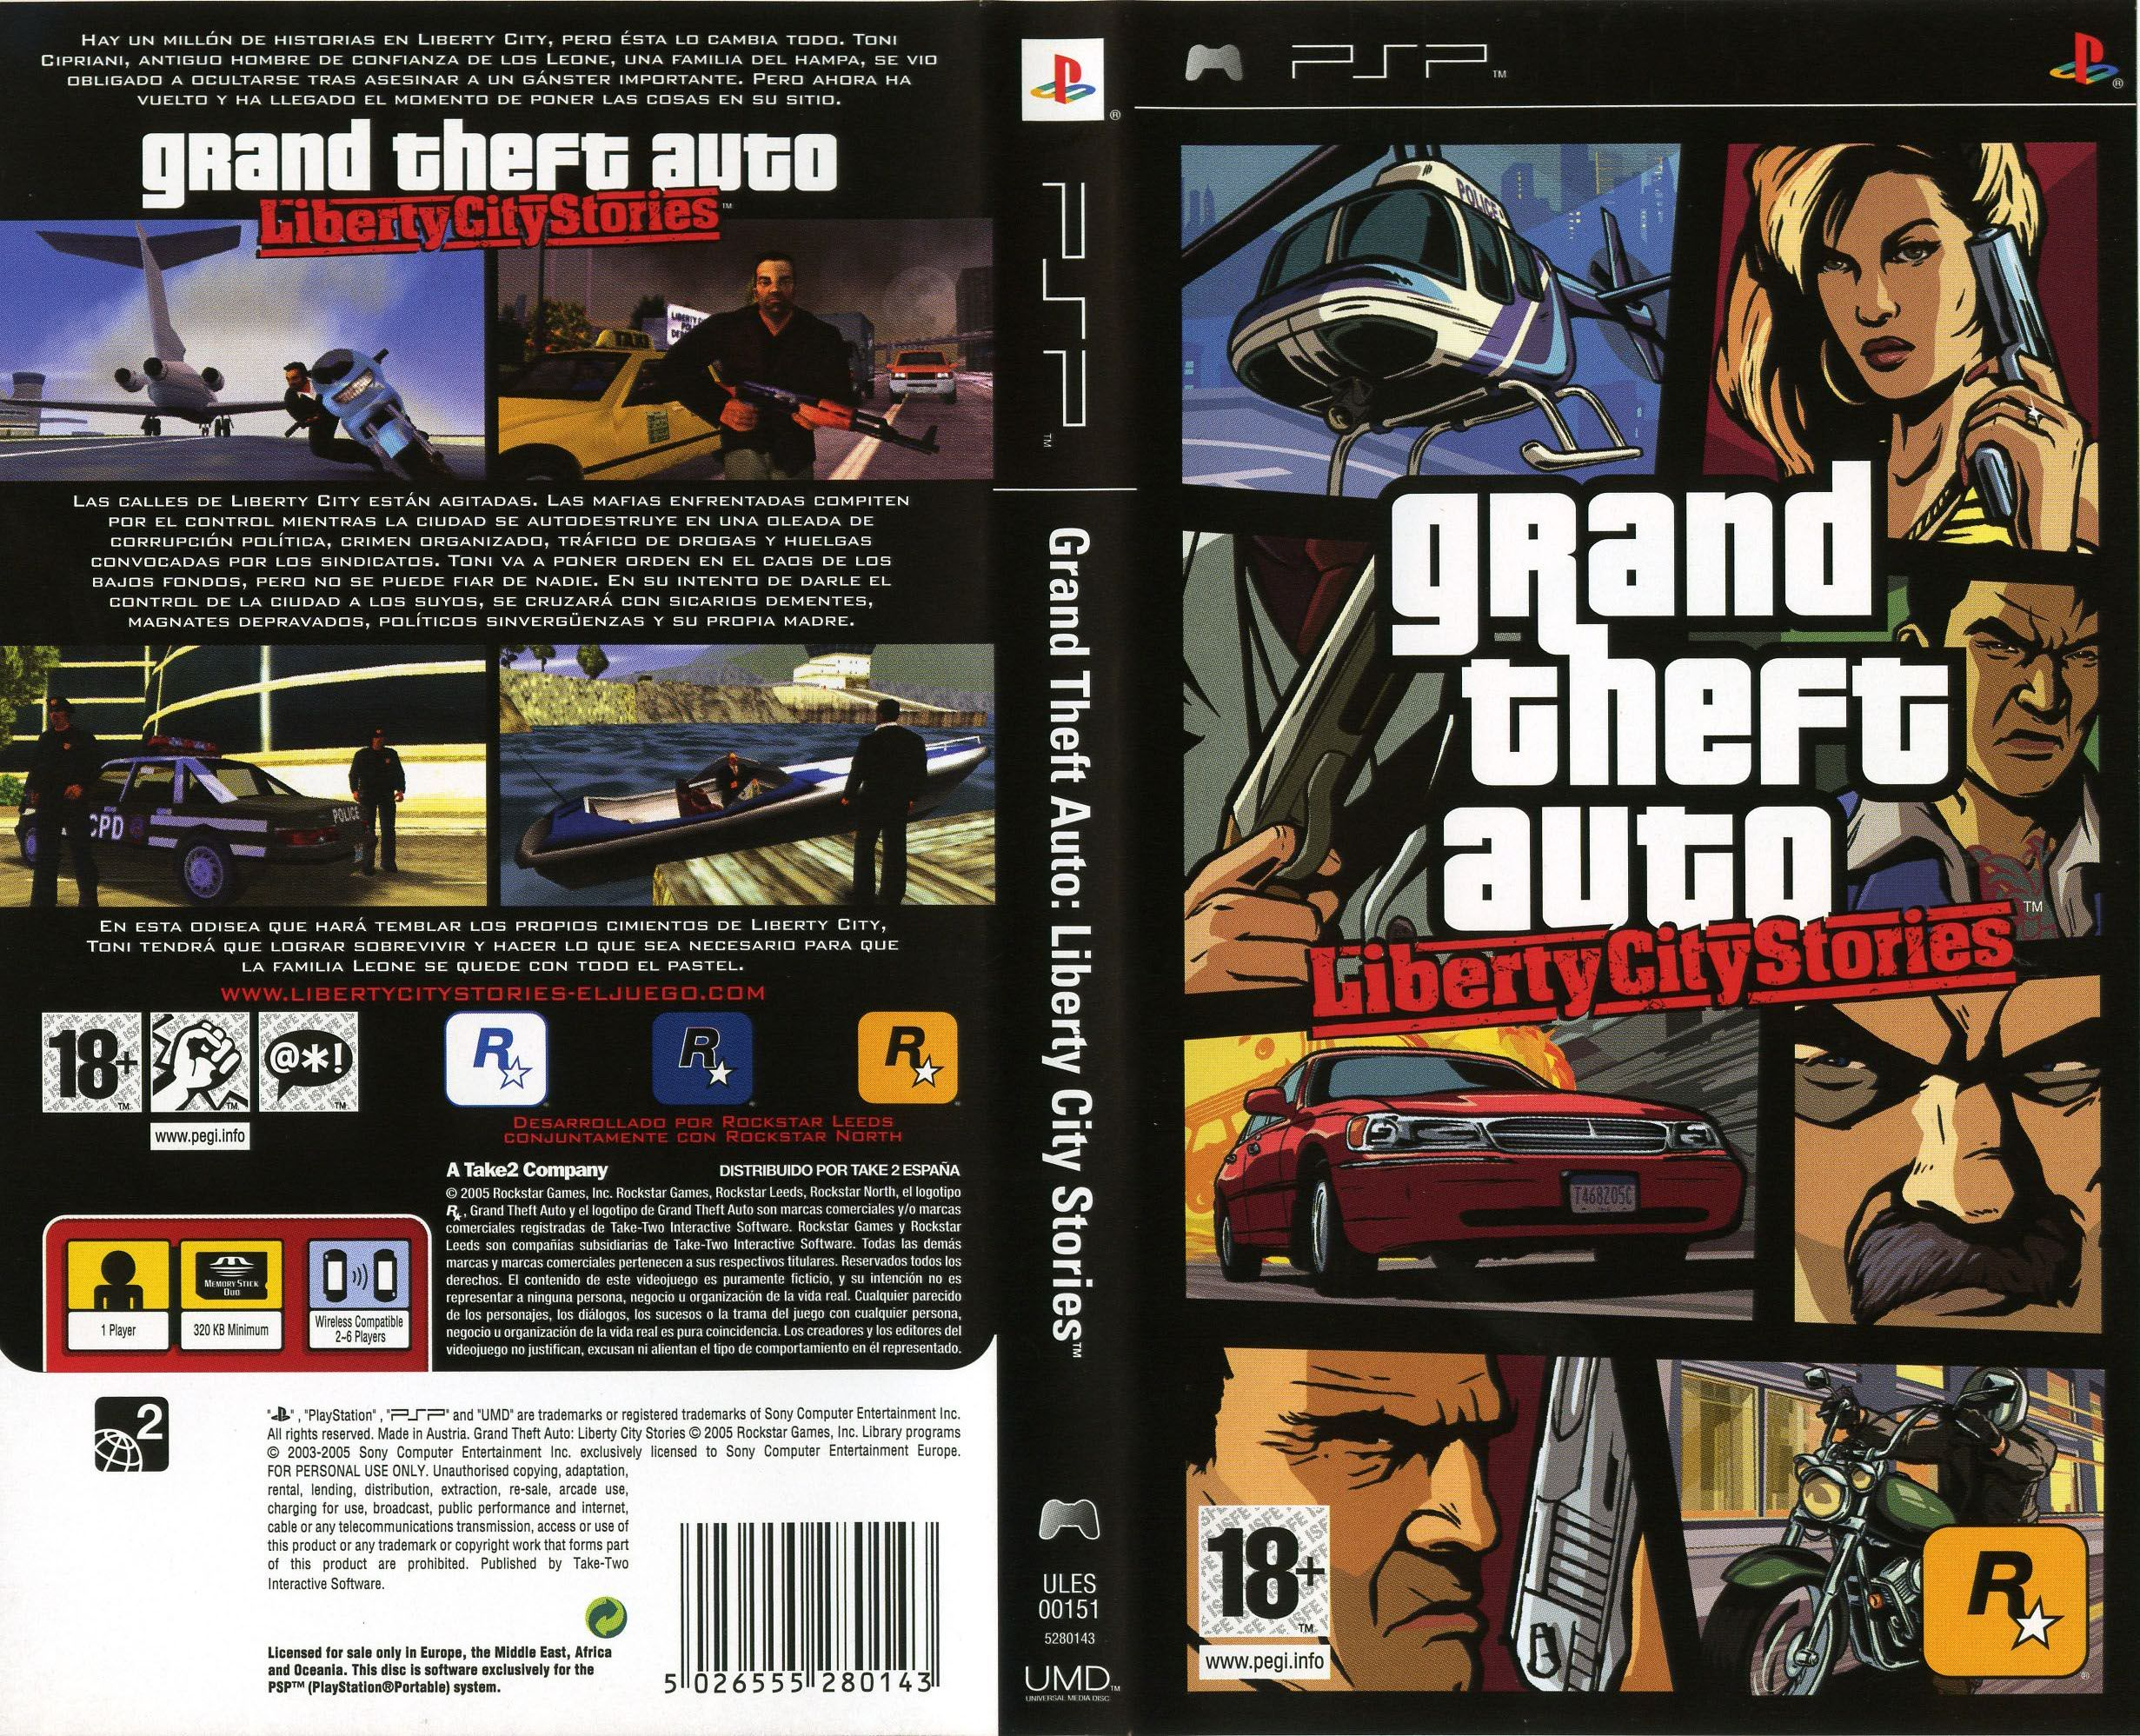 Gta liberty city stories psp mega